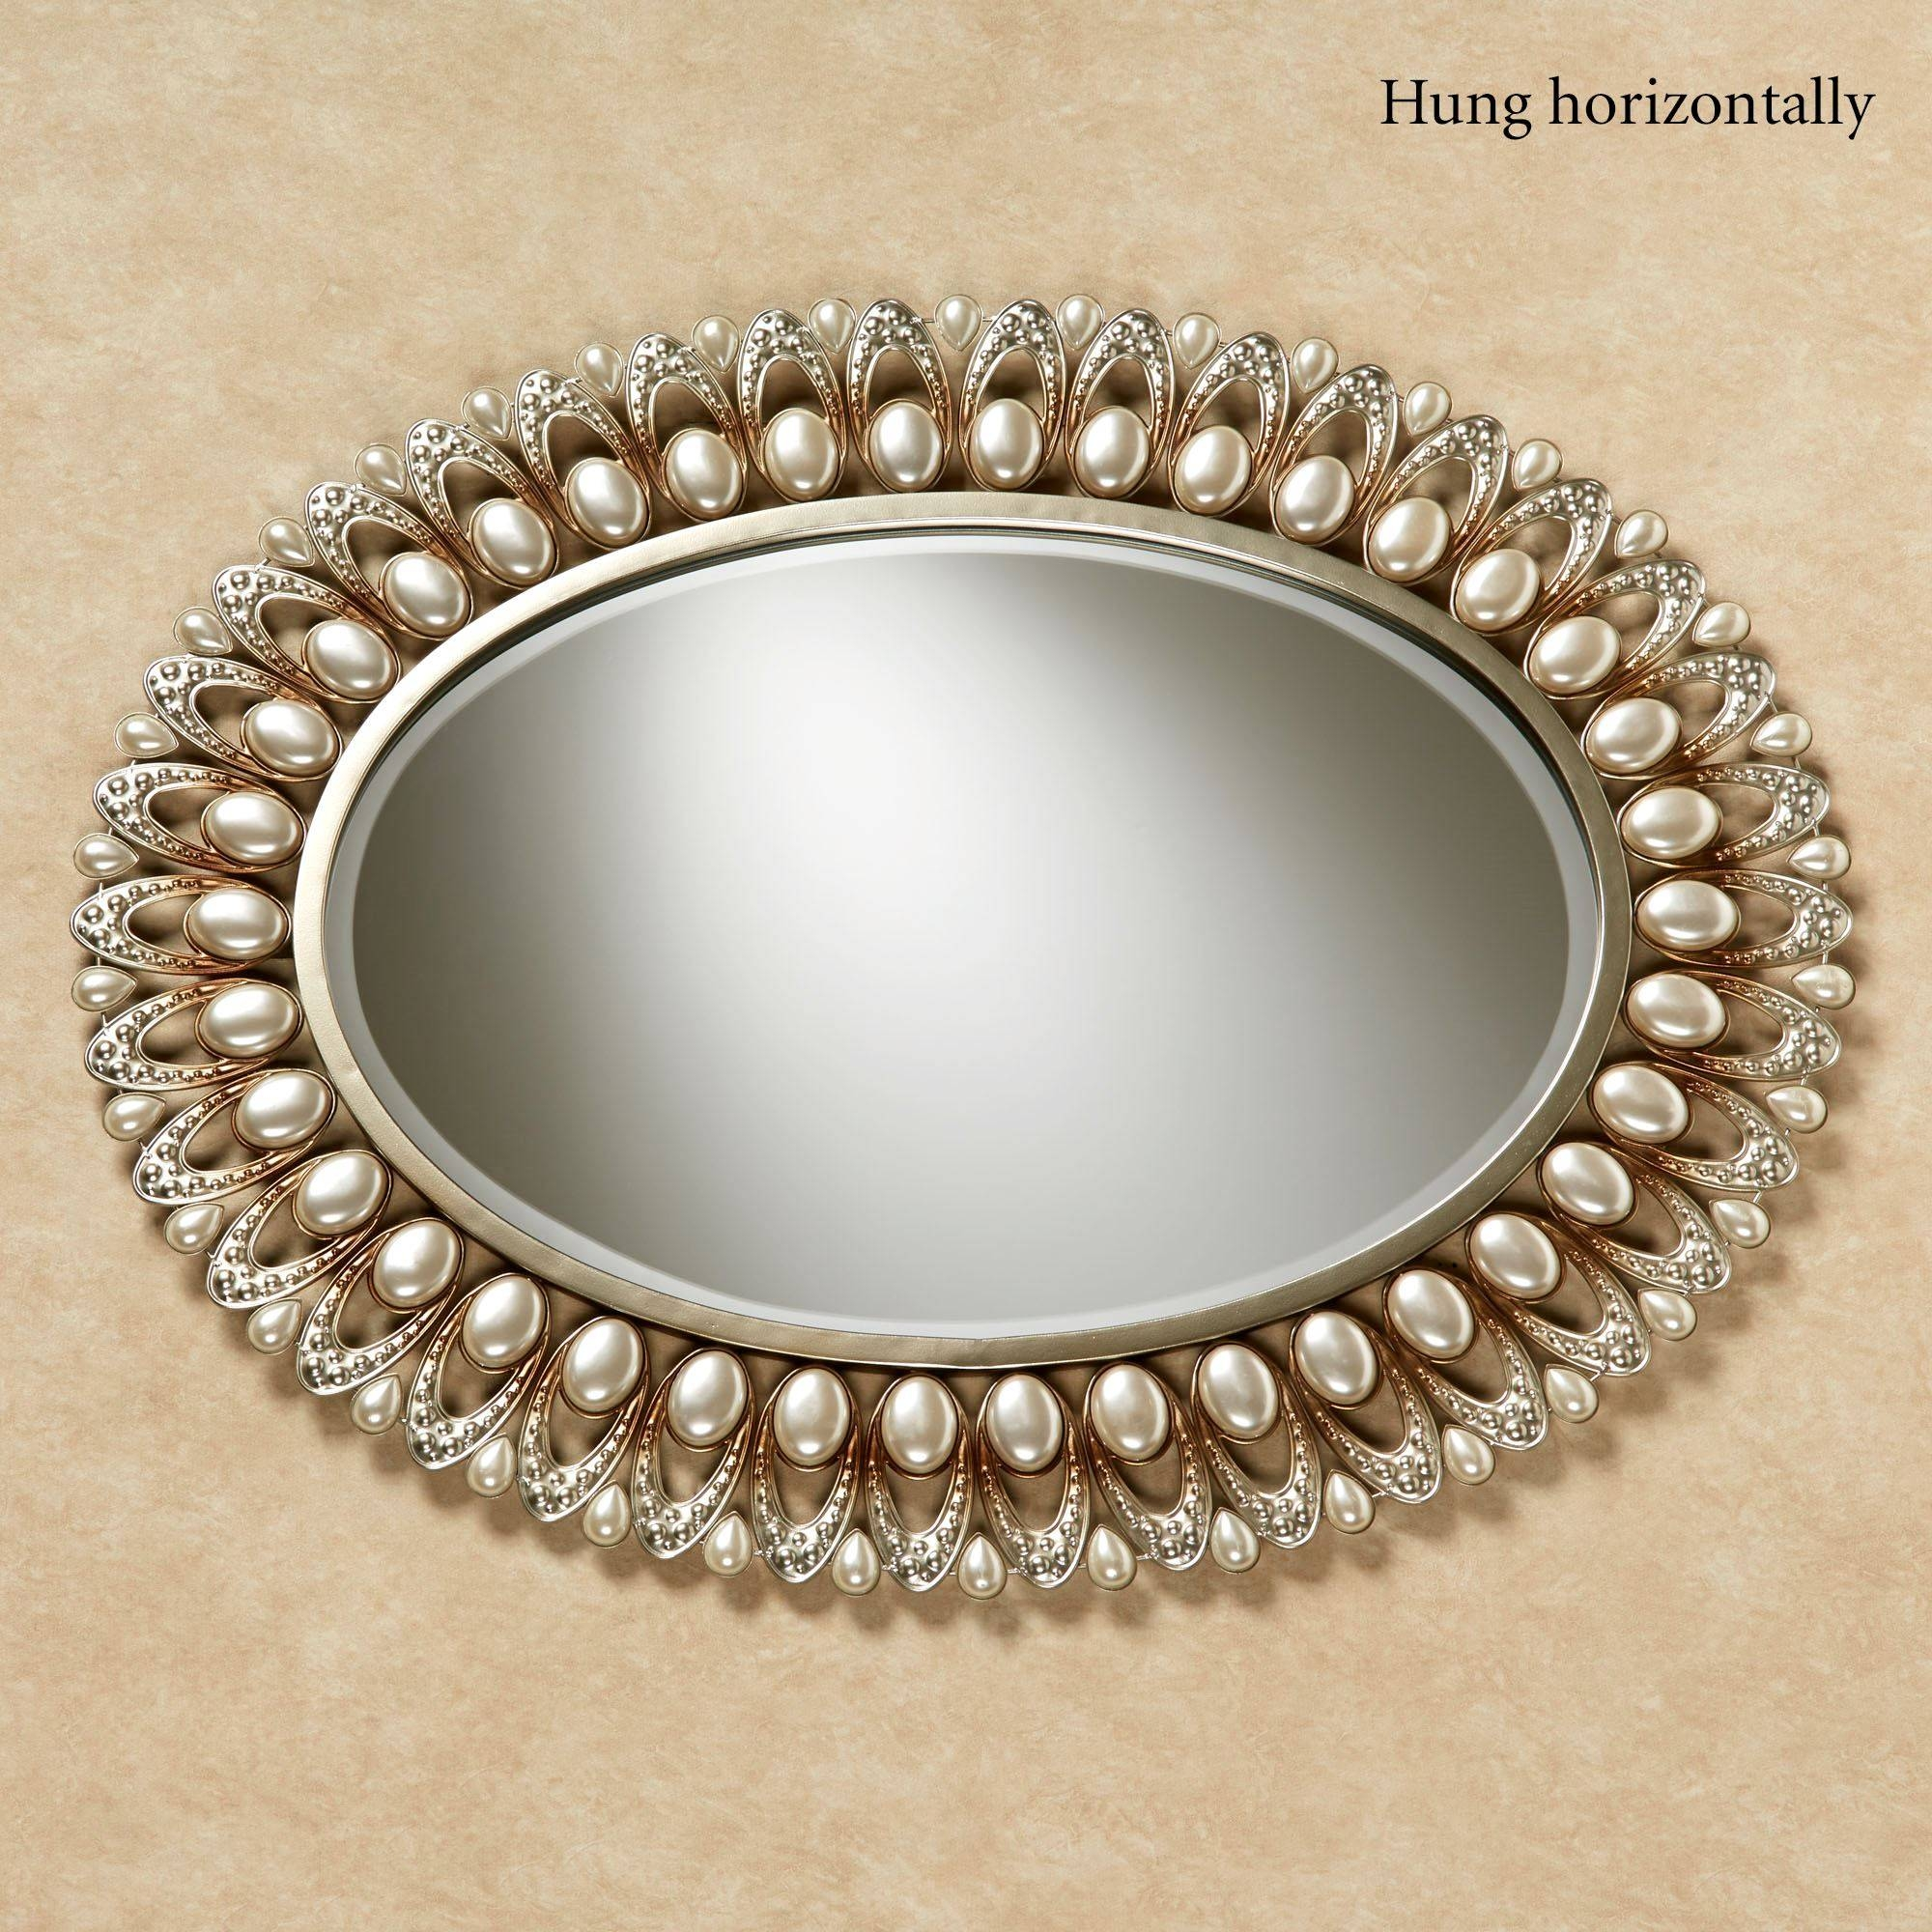 Julietta Pearl Oval Wall Mirror pertaining to Champagne Wall Mirrors (Image 13 of 25)